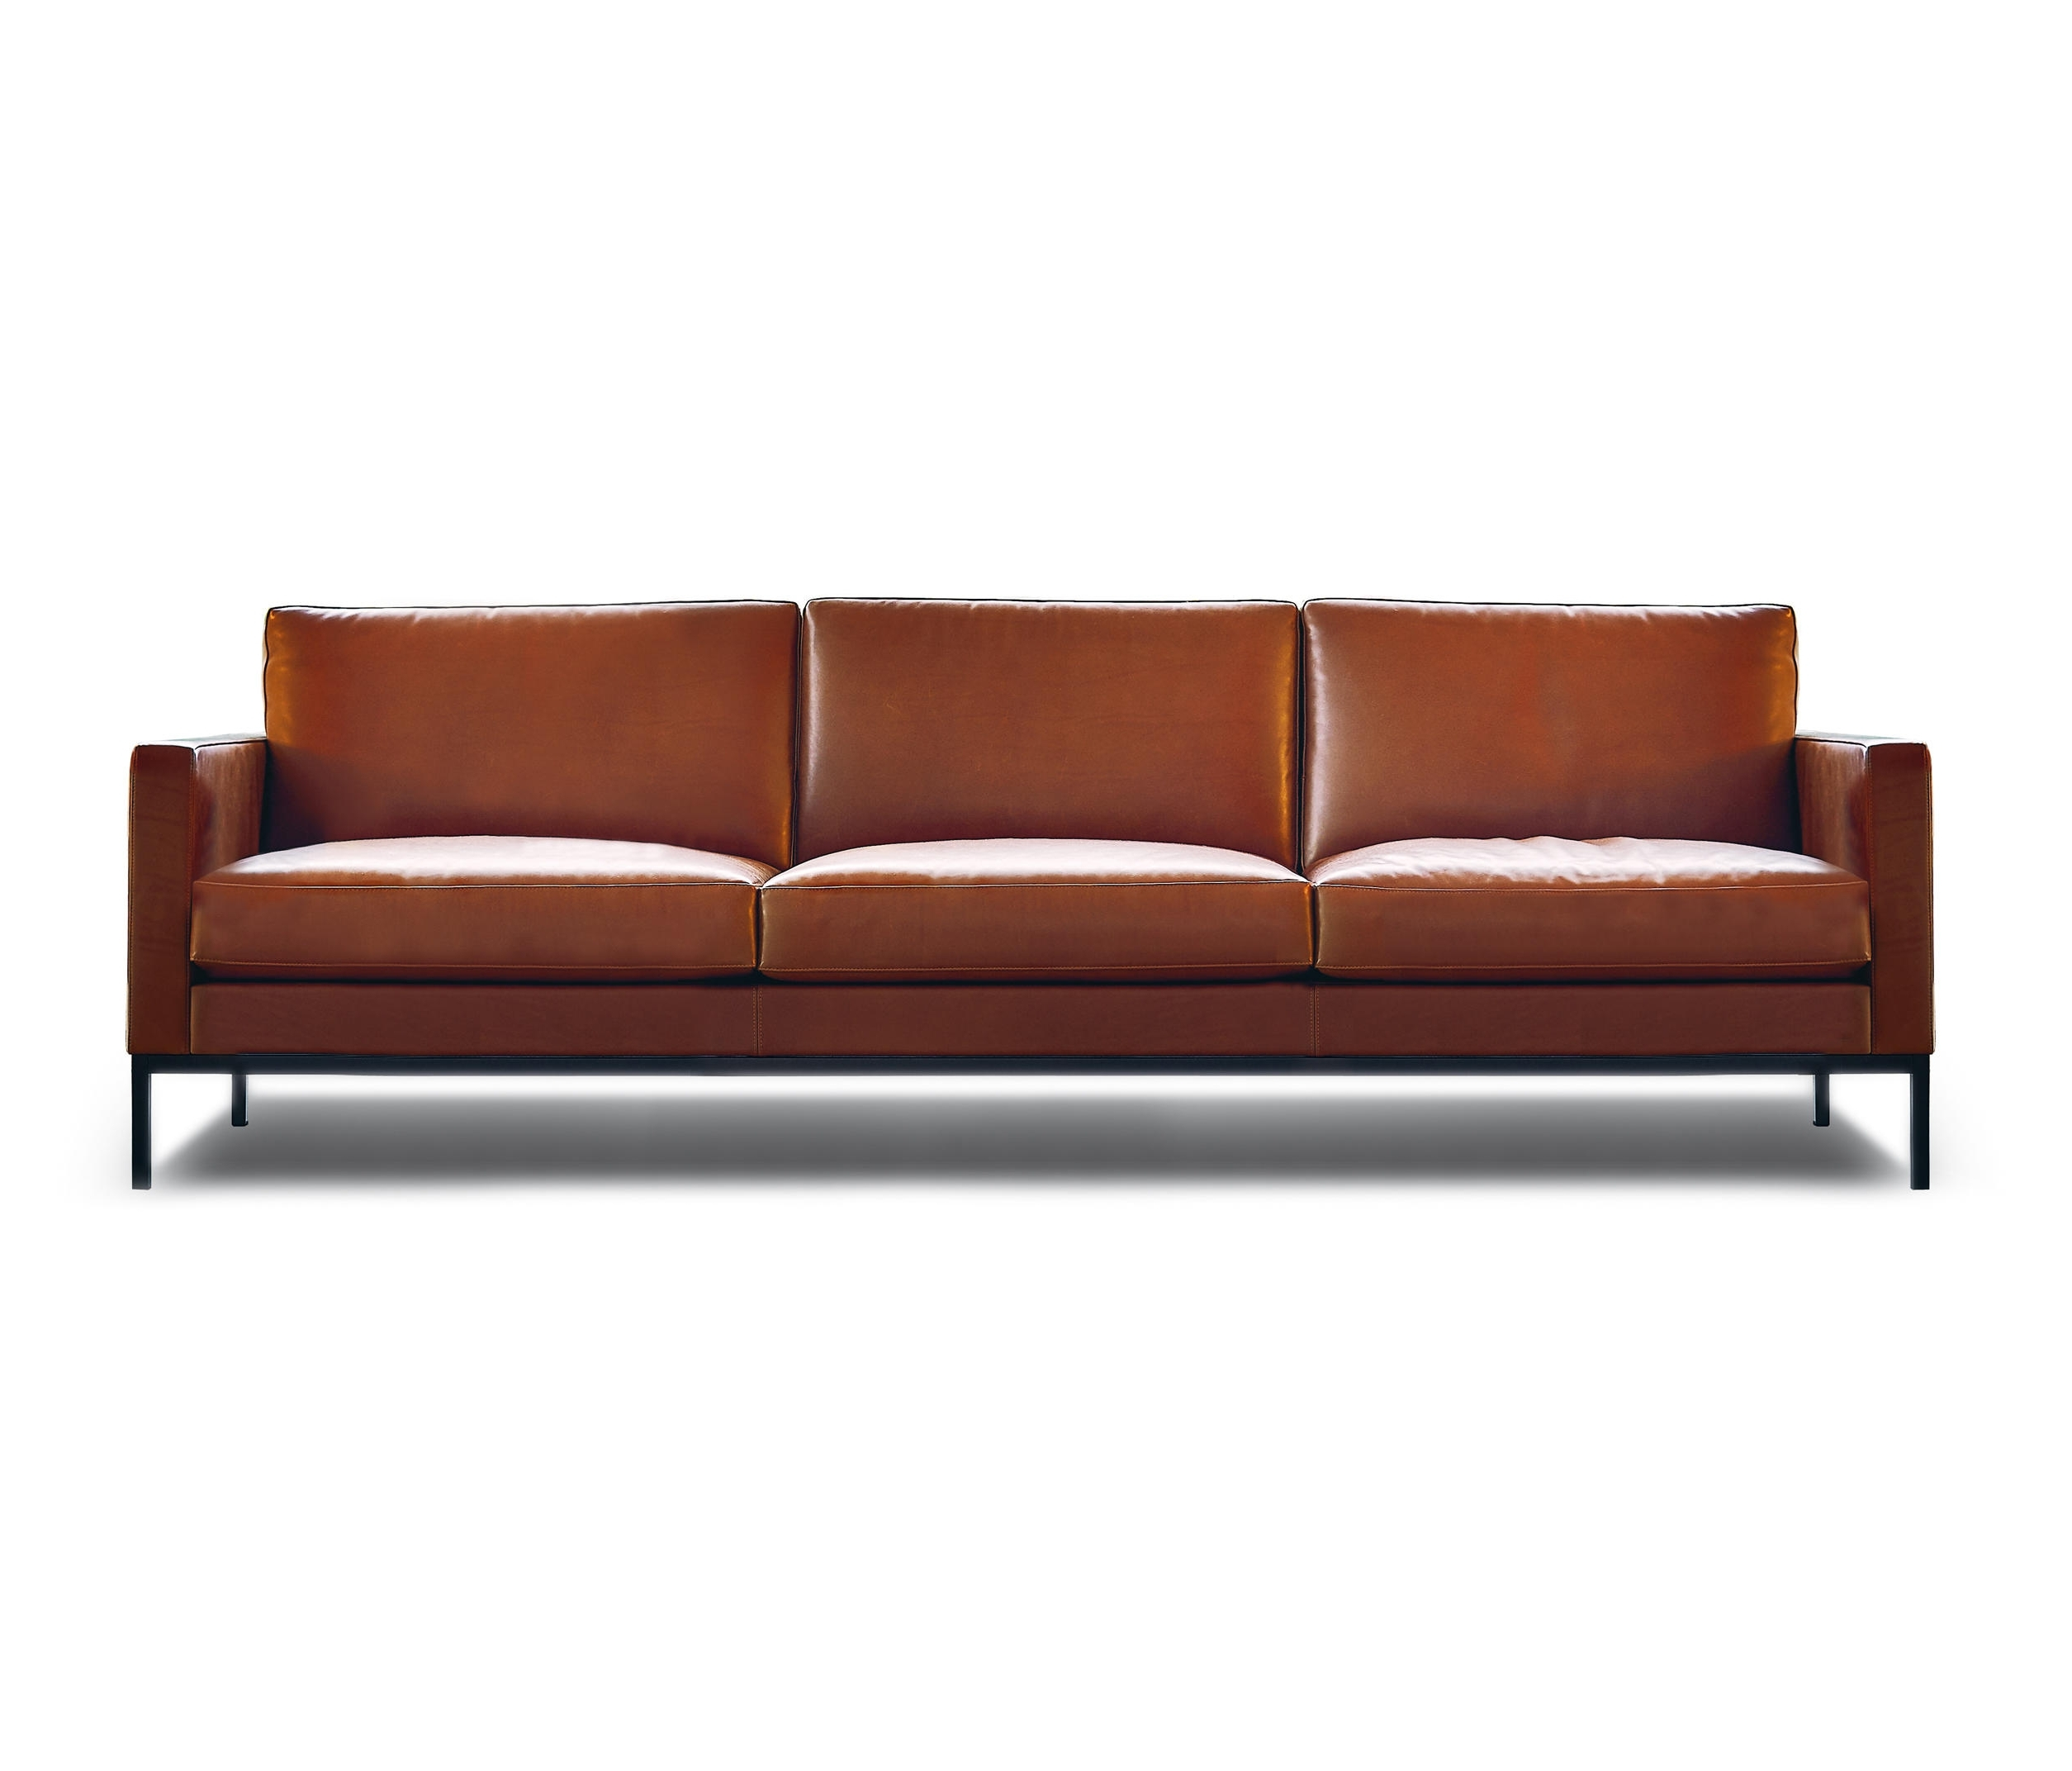 Well Known Florence Sofas And Loveseats Intended For Florence Knoll Lounge 3 Seat Sofa – Lounge Sofas From Knoll (View 6 of 15)